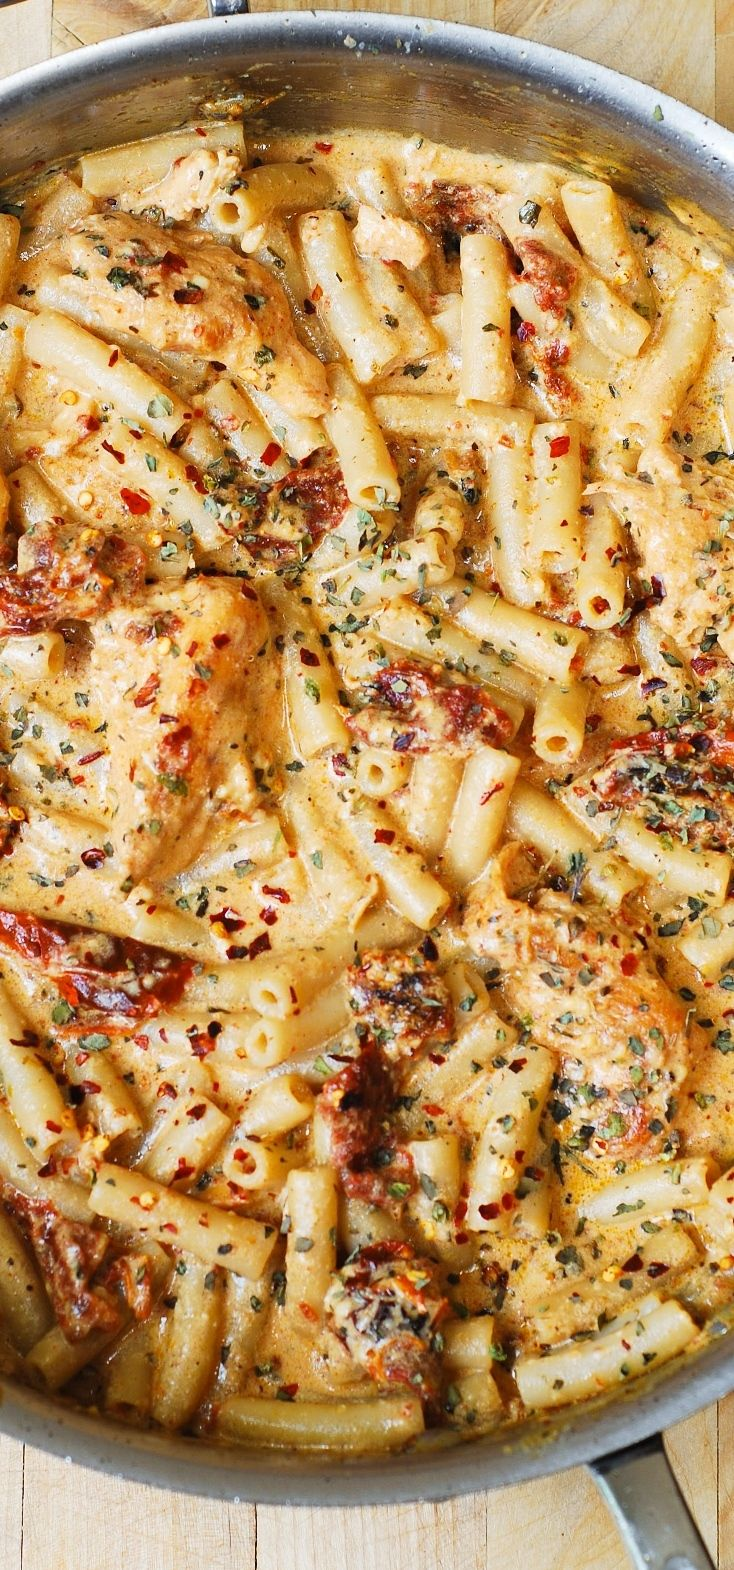 Chicken breast tenderloins sautéed with sun-dried tomatoes and penne pasta in a creamy mozzarella cheese sauce seasoned with basil, crushed red pepper flakes